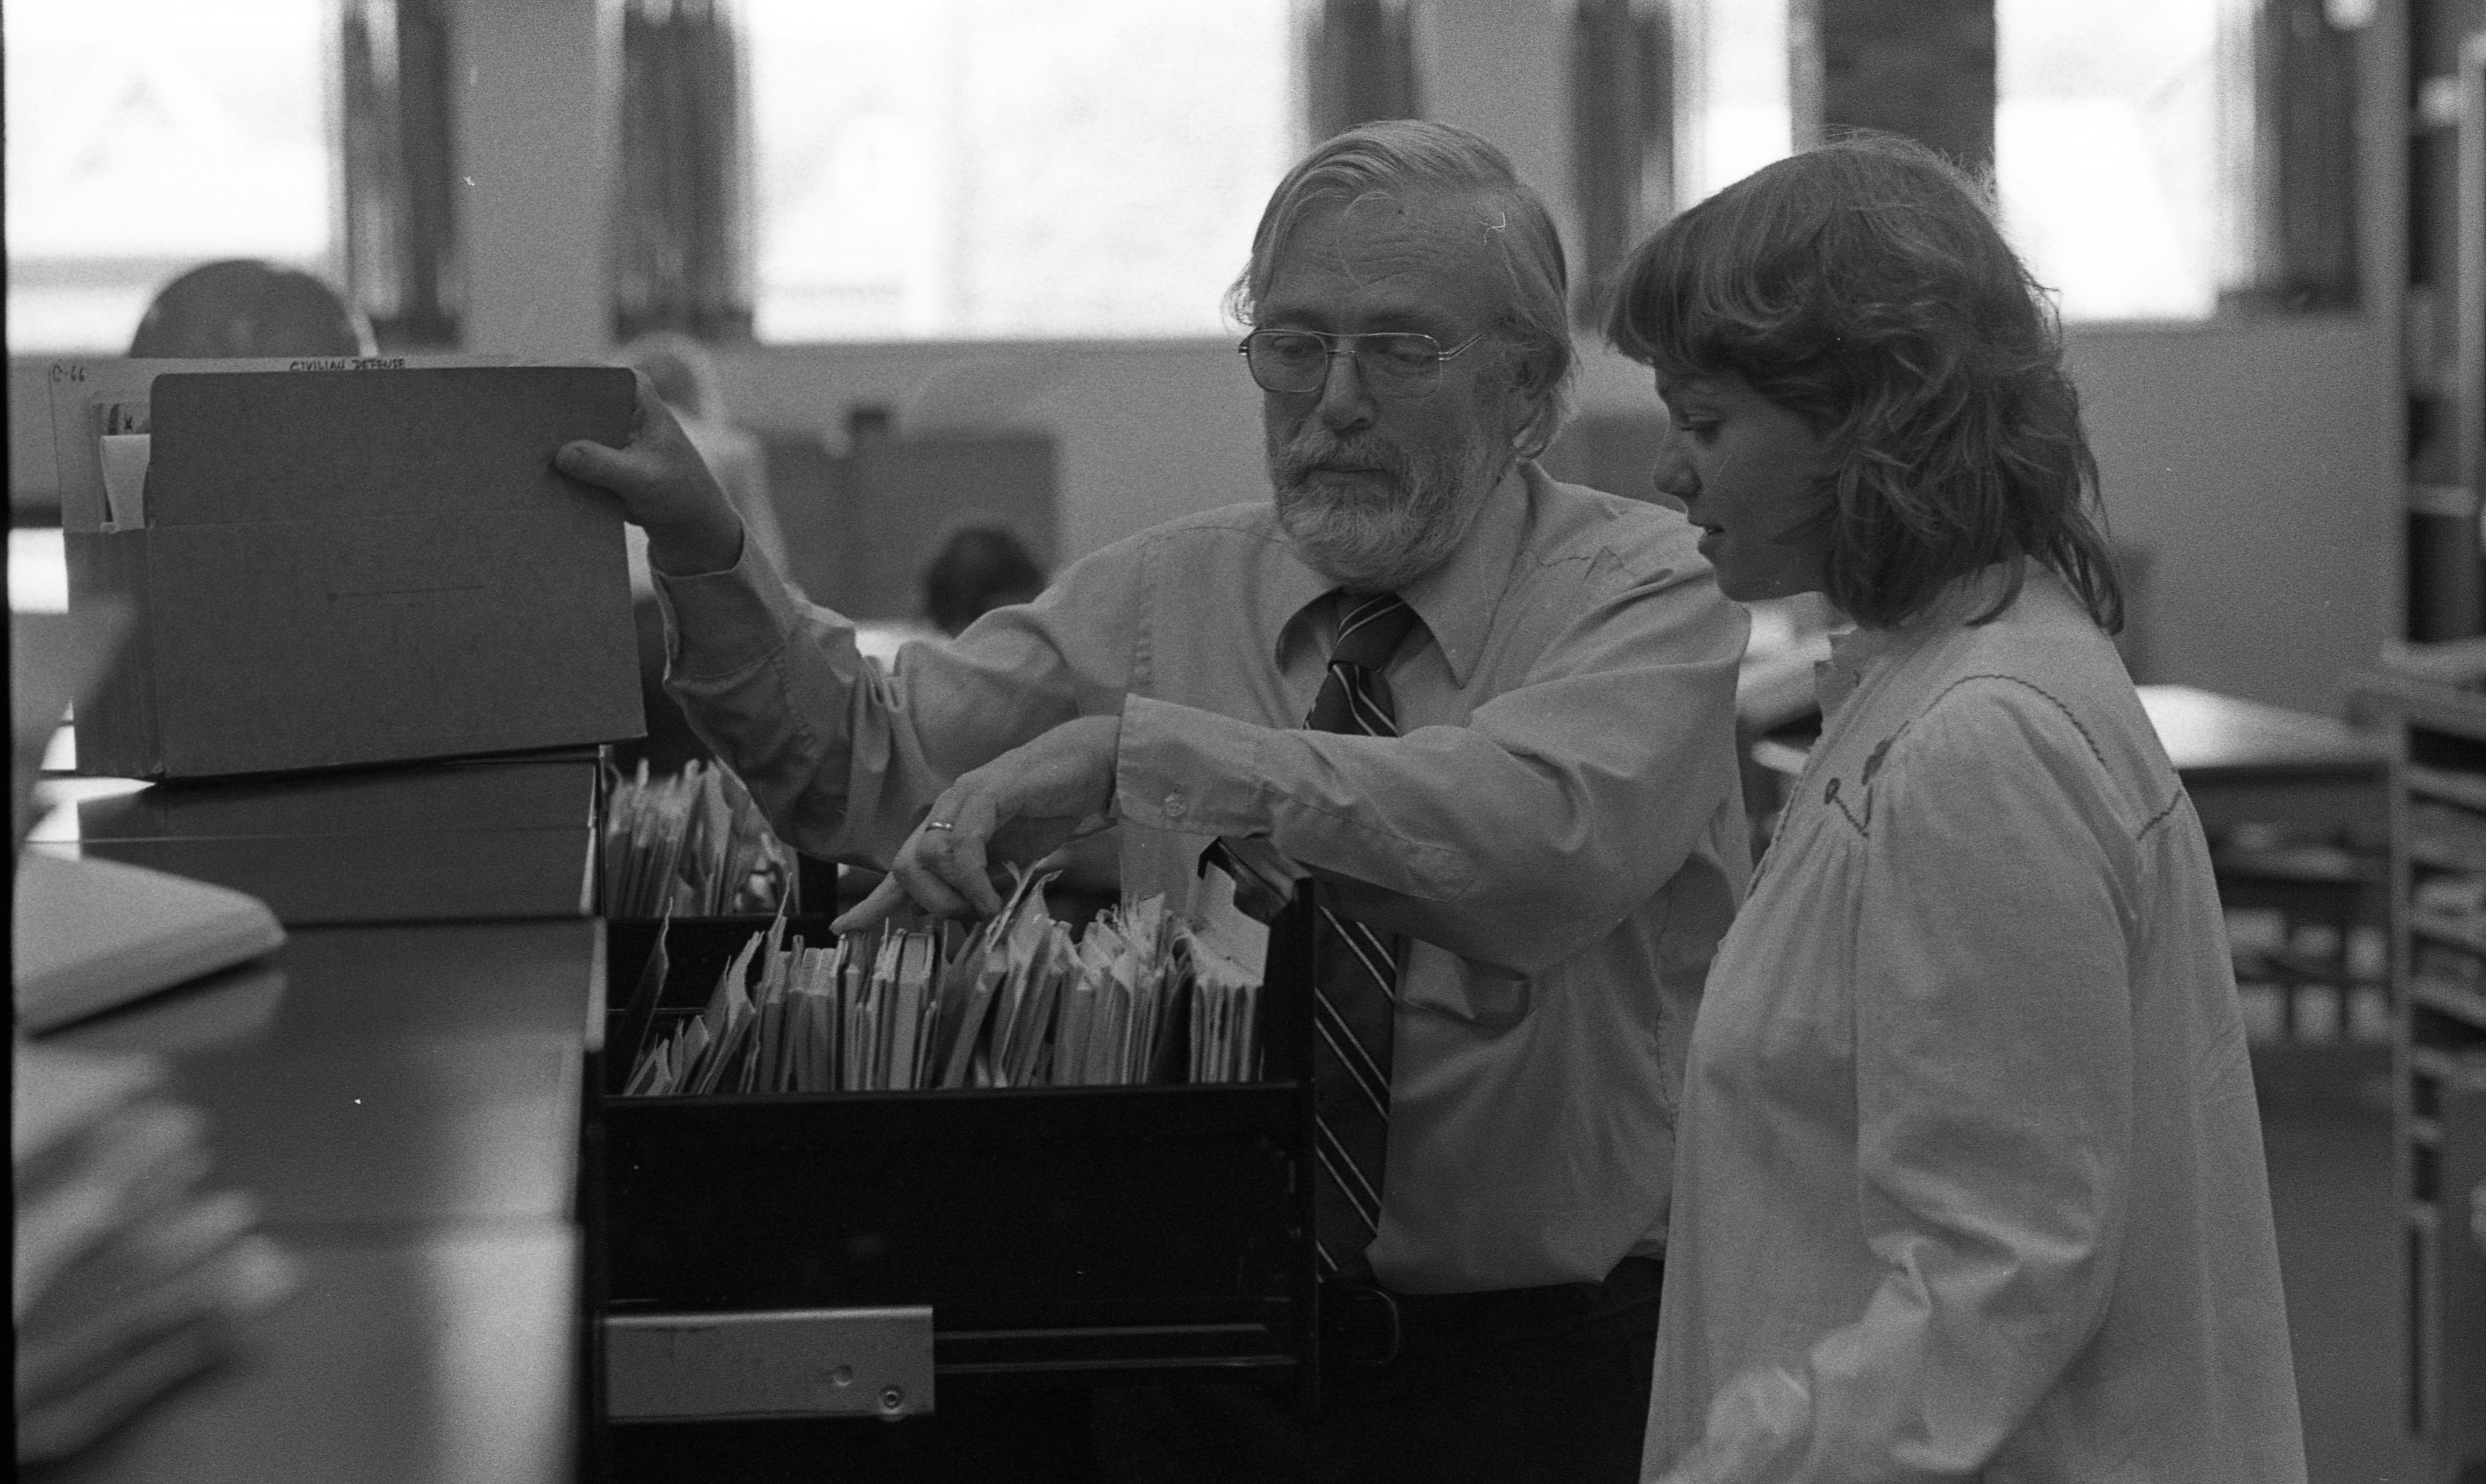 Ann Arbor Public Library Reference Librarian Gene Wilson Works With Patron on Research, July 1976 image